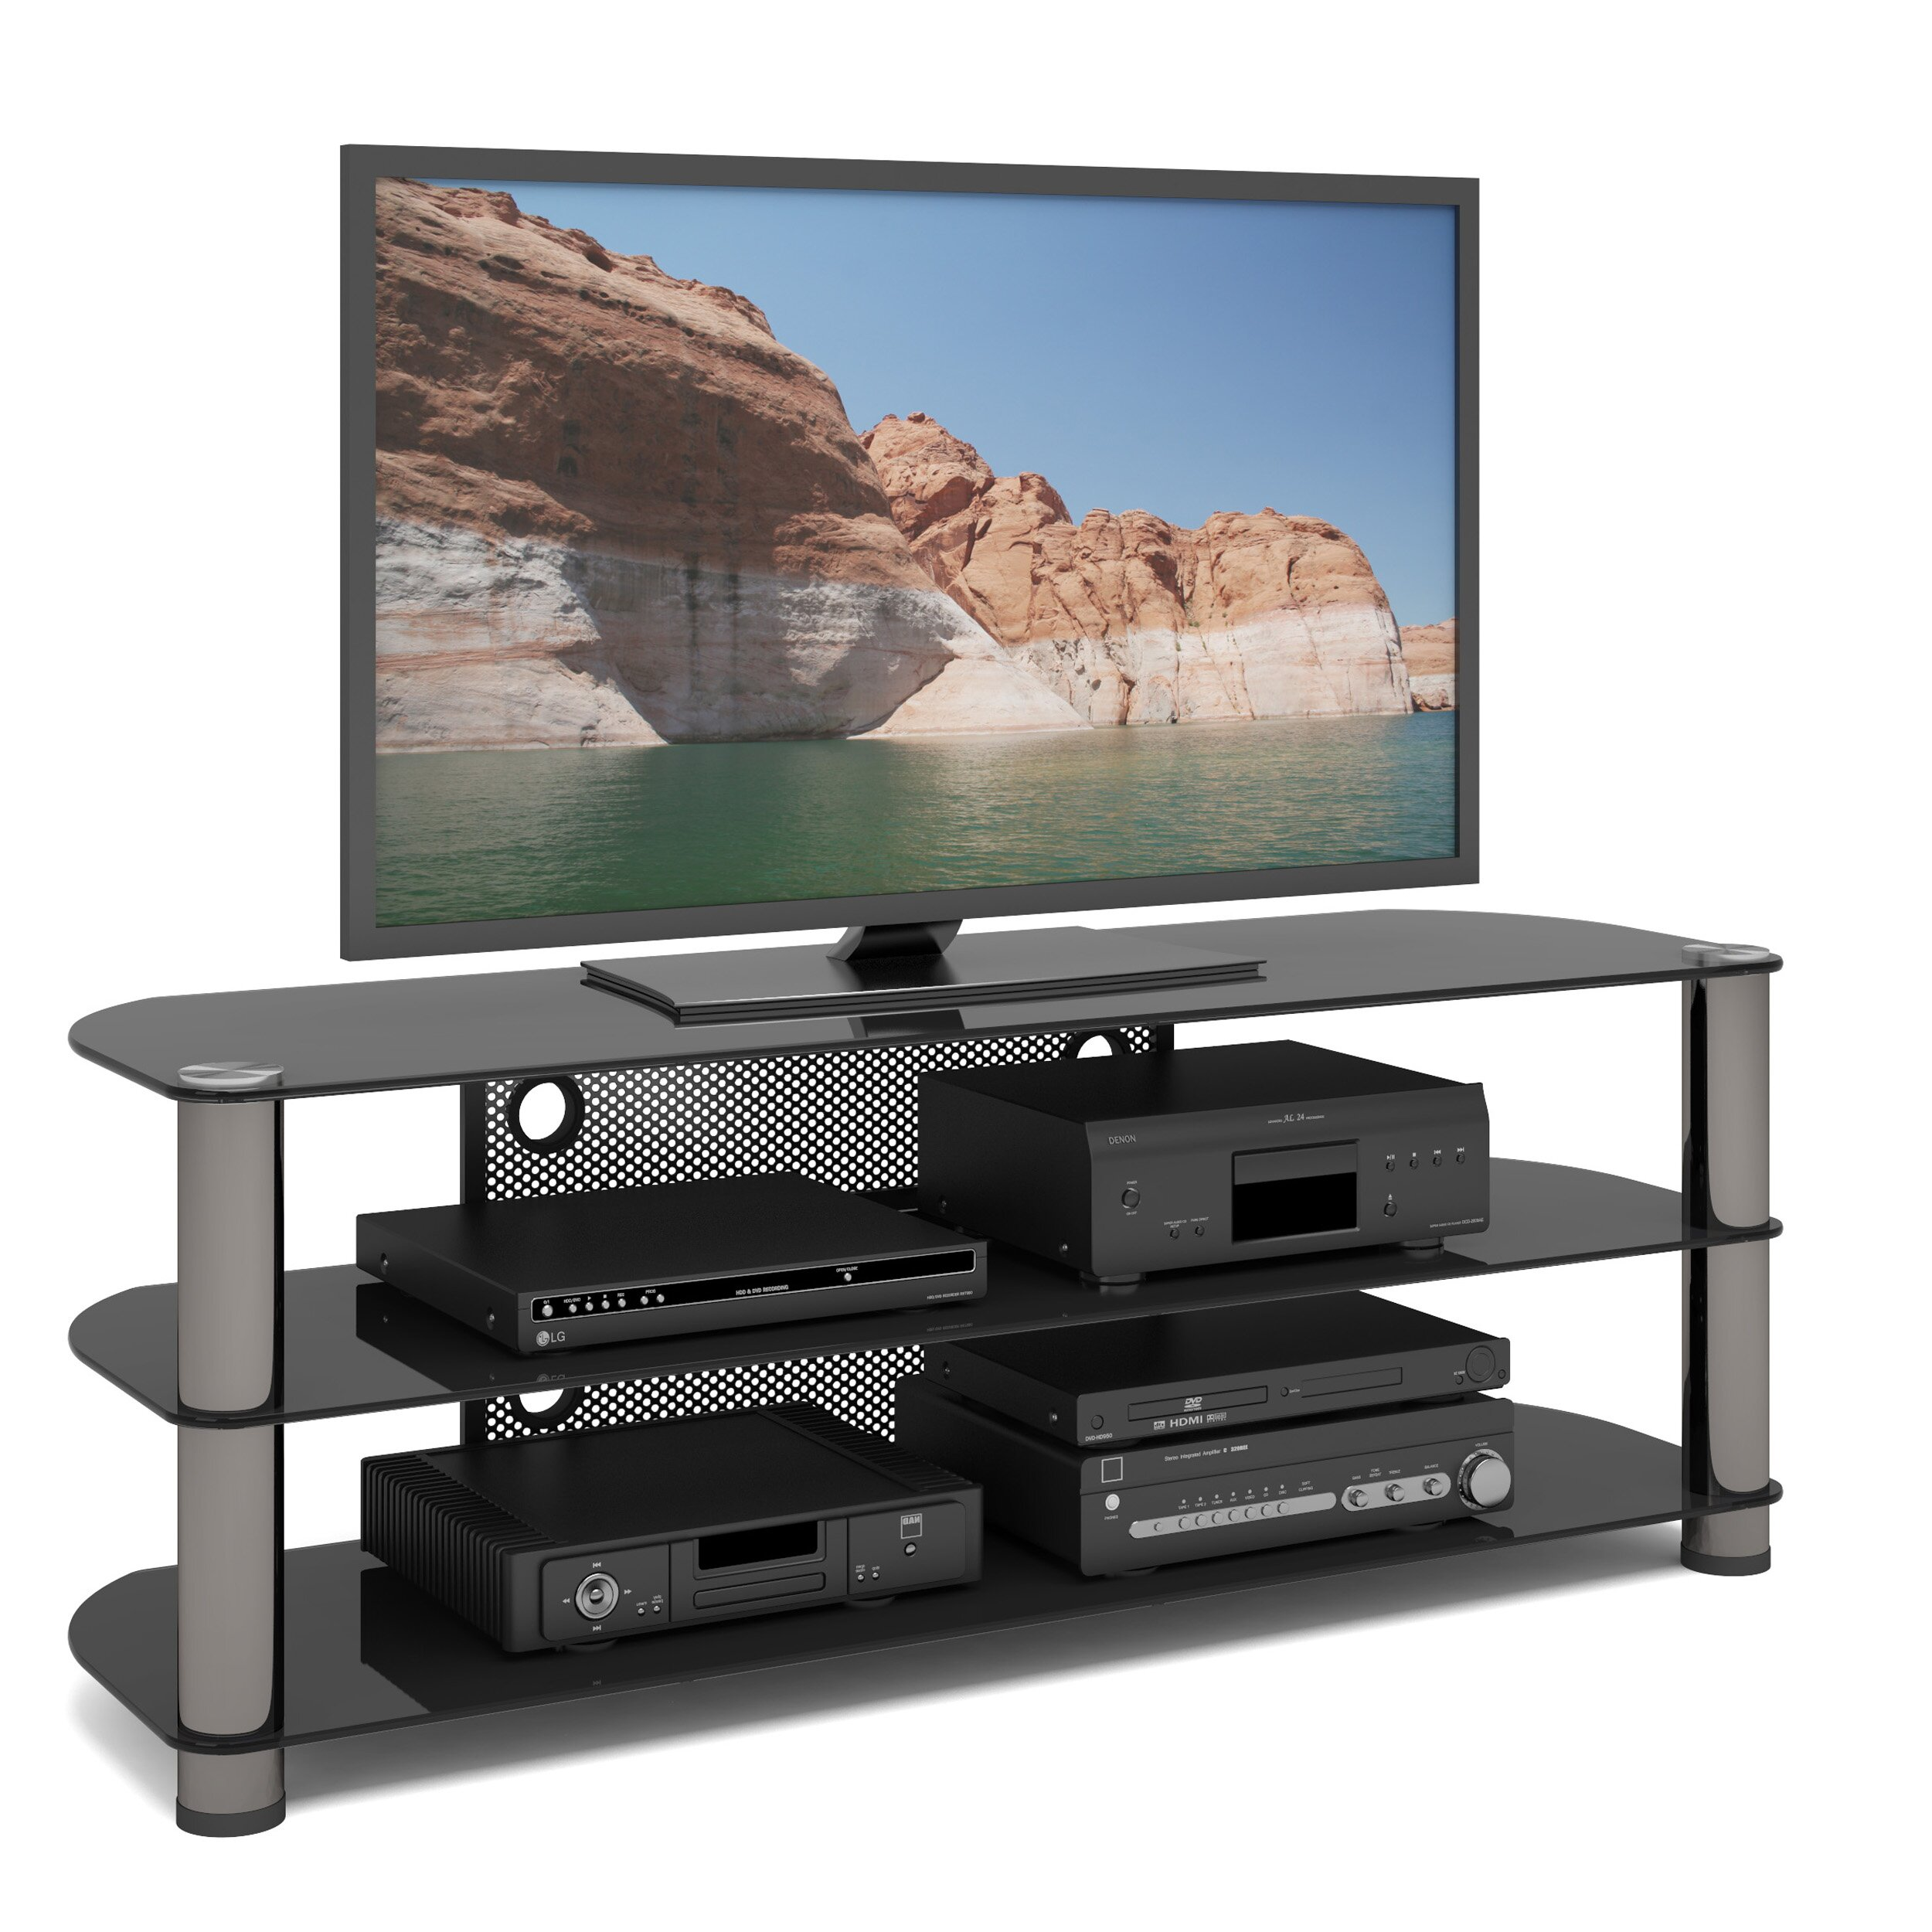 Tv Stand Designs Latest : Dcor design new york tv stand reviews wayfair